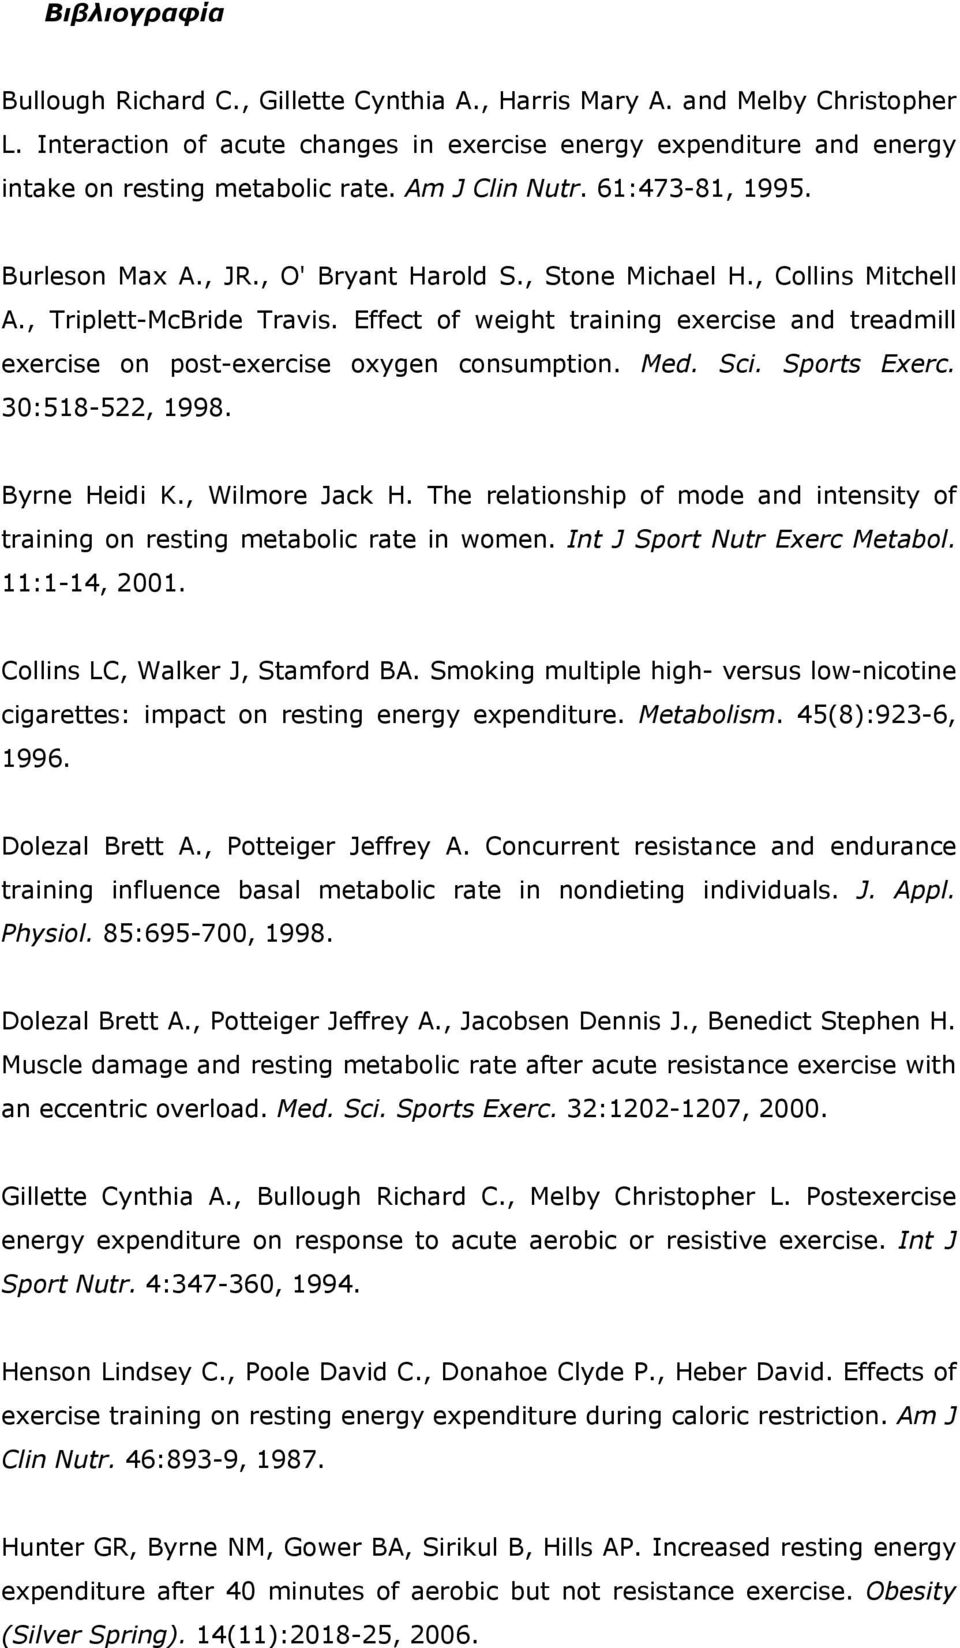 Effect of weight training exercise and treadmill exercise on post-exercise oxygen consumption. Med. Sci. Sports Exerc. 30:518-522, 1998. Byrne Heidi K., Wilmore Jack H.